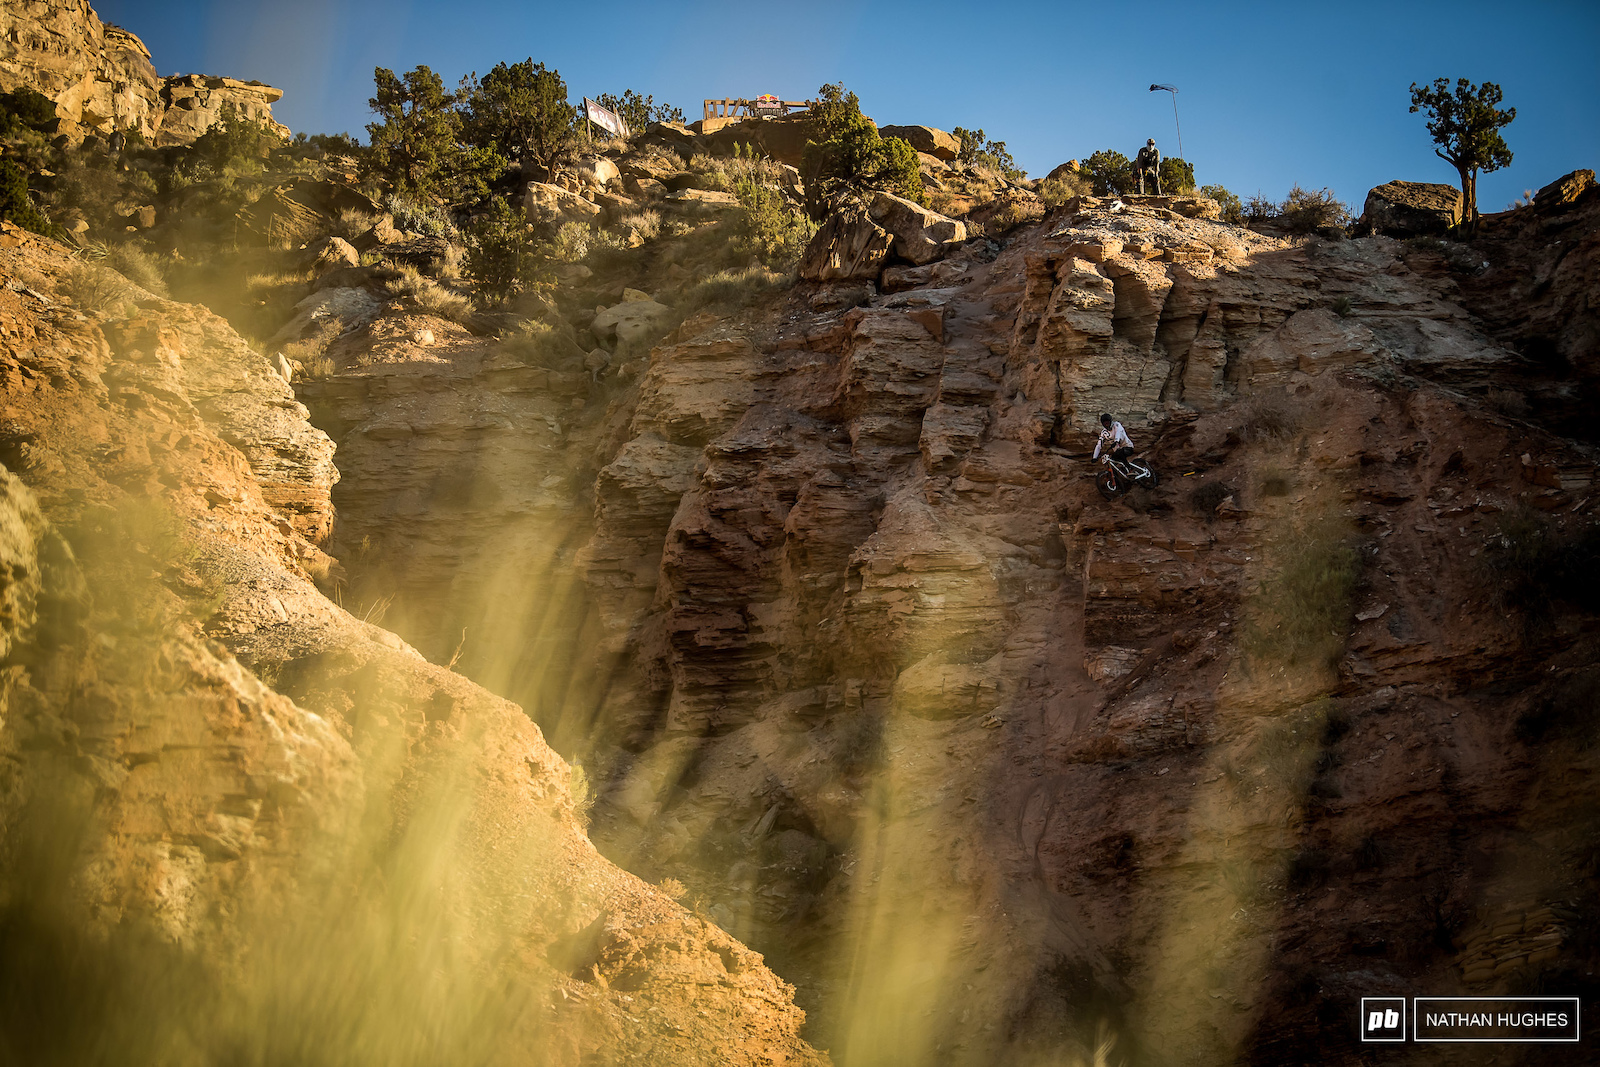 DJ Brandt s is hella rough and scary. See here his hanging rock garden the vertical chute to the left of him .